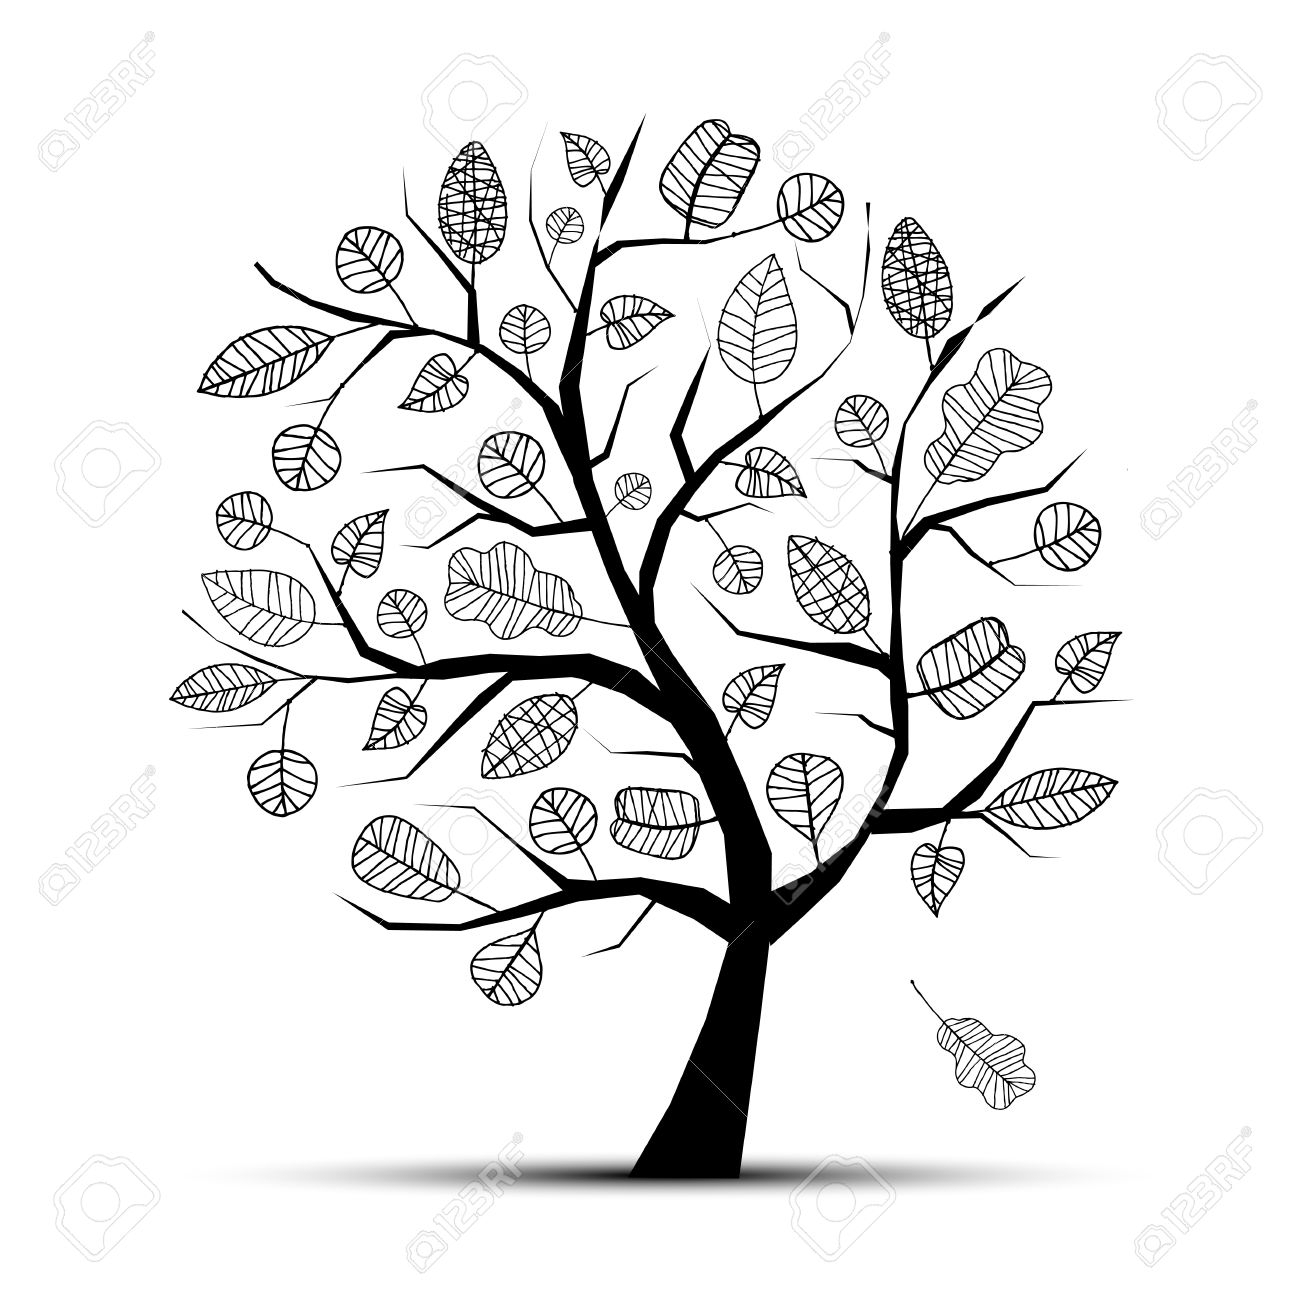 tree outline images